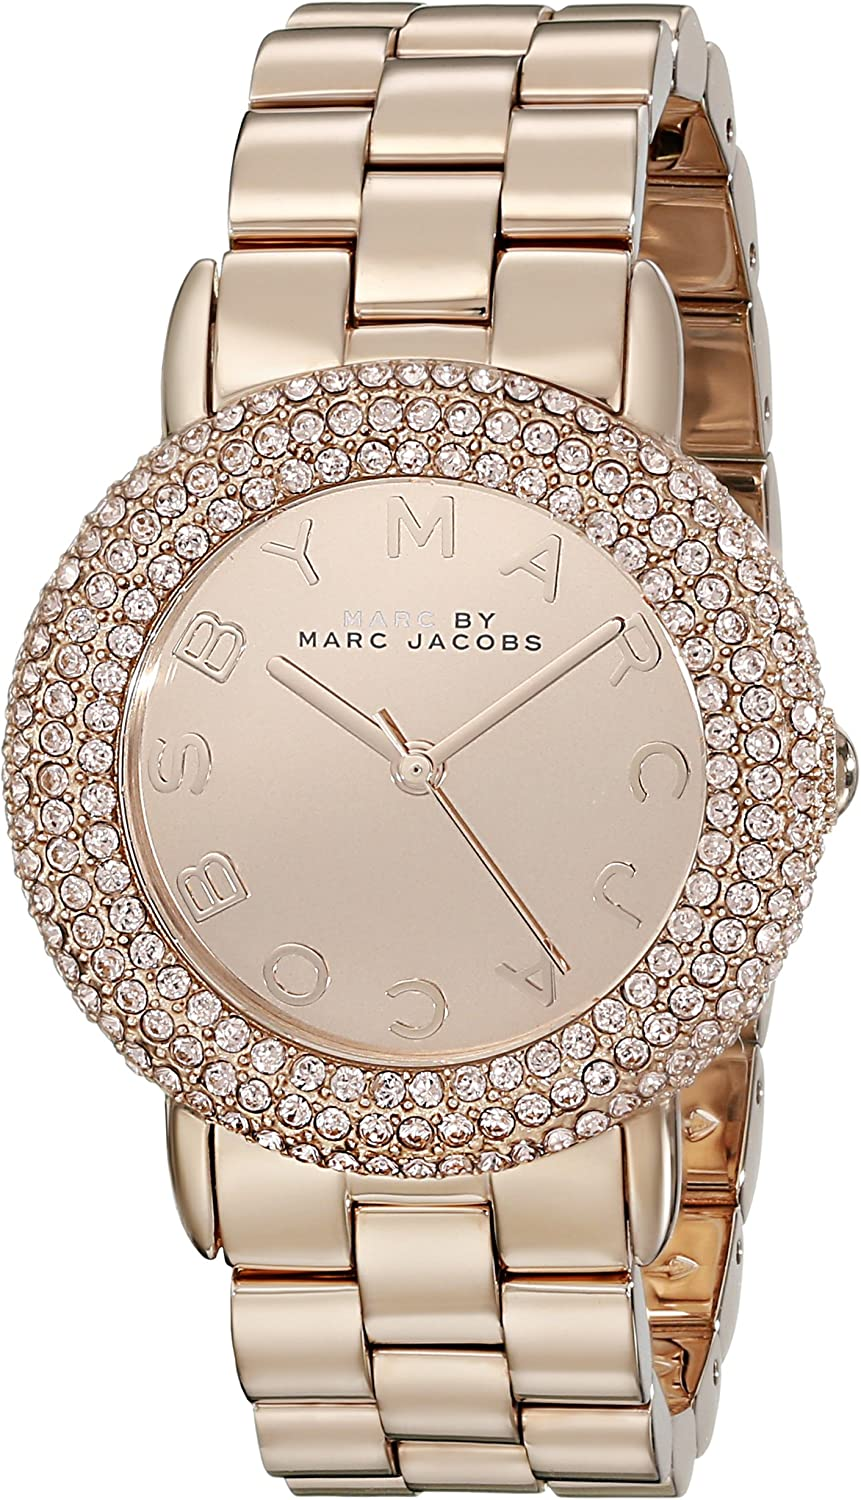 Time sale Marc by Jacobs Women's MBM3192 Display Max 69% OFF Analog Marci